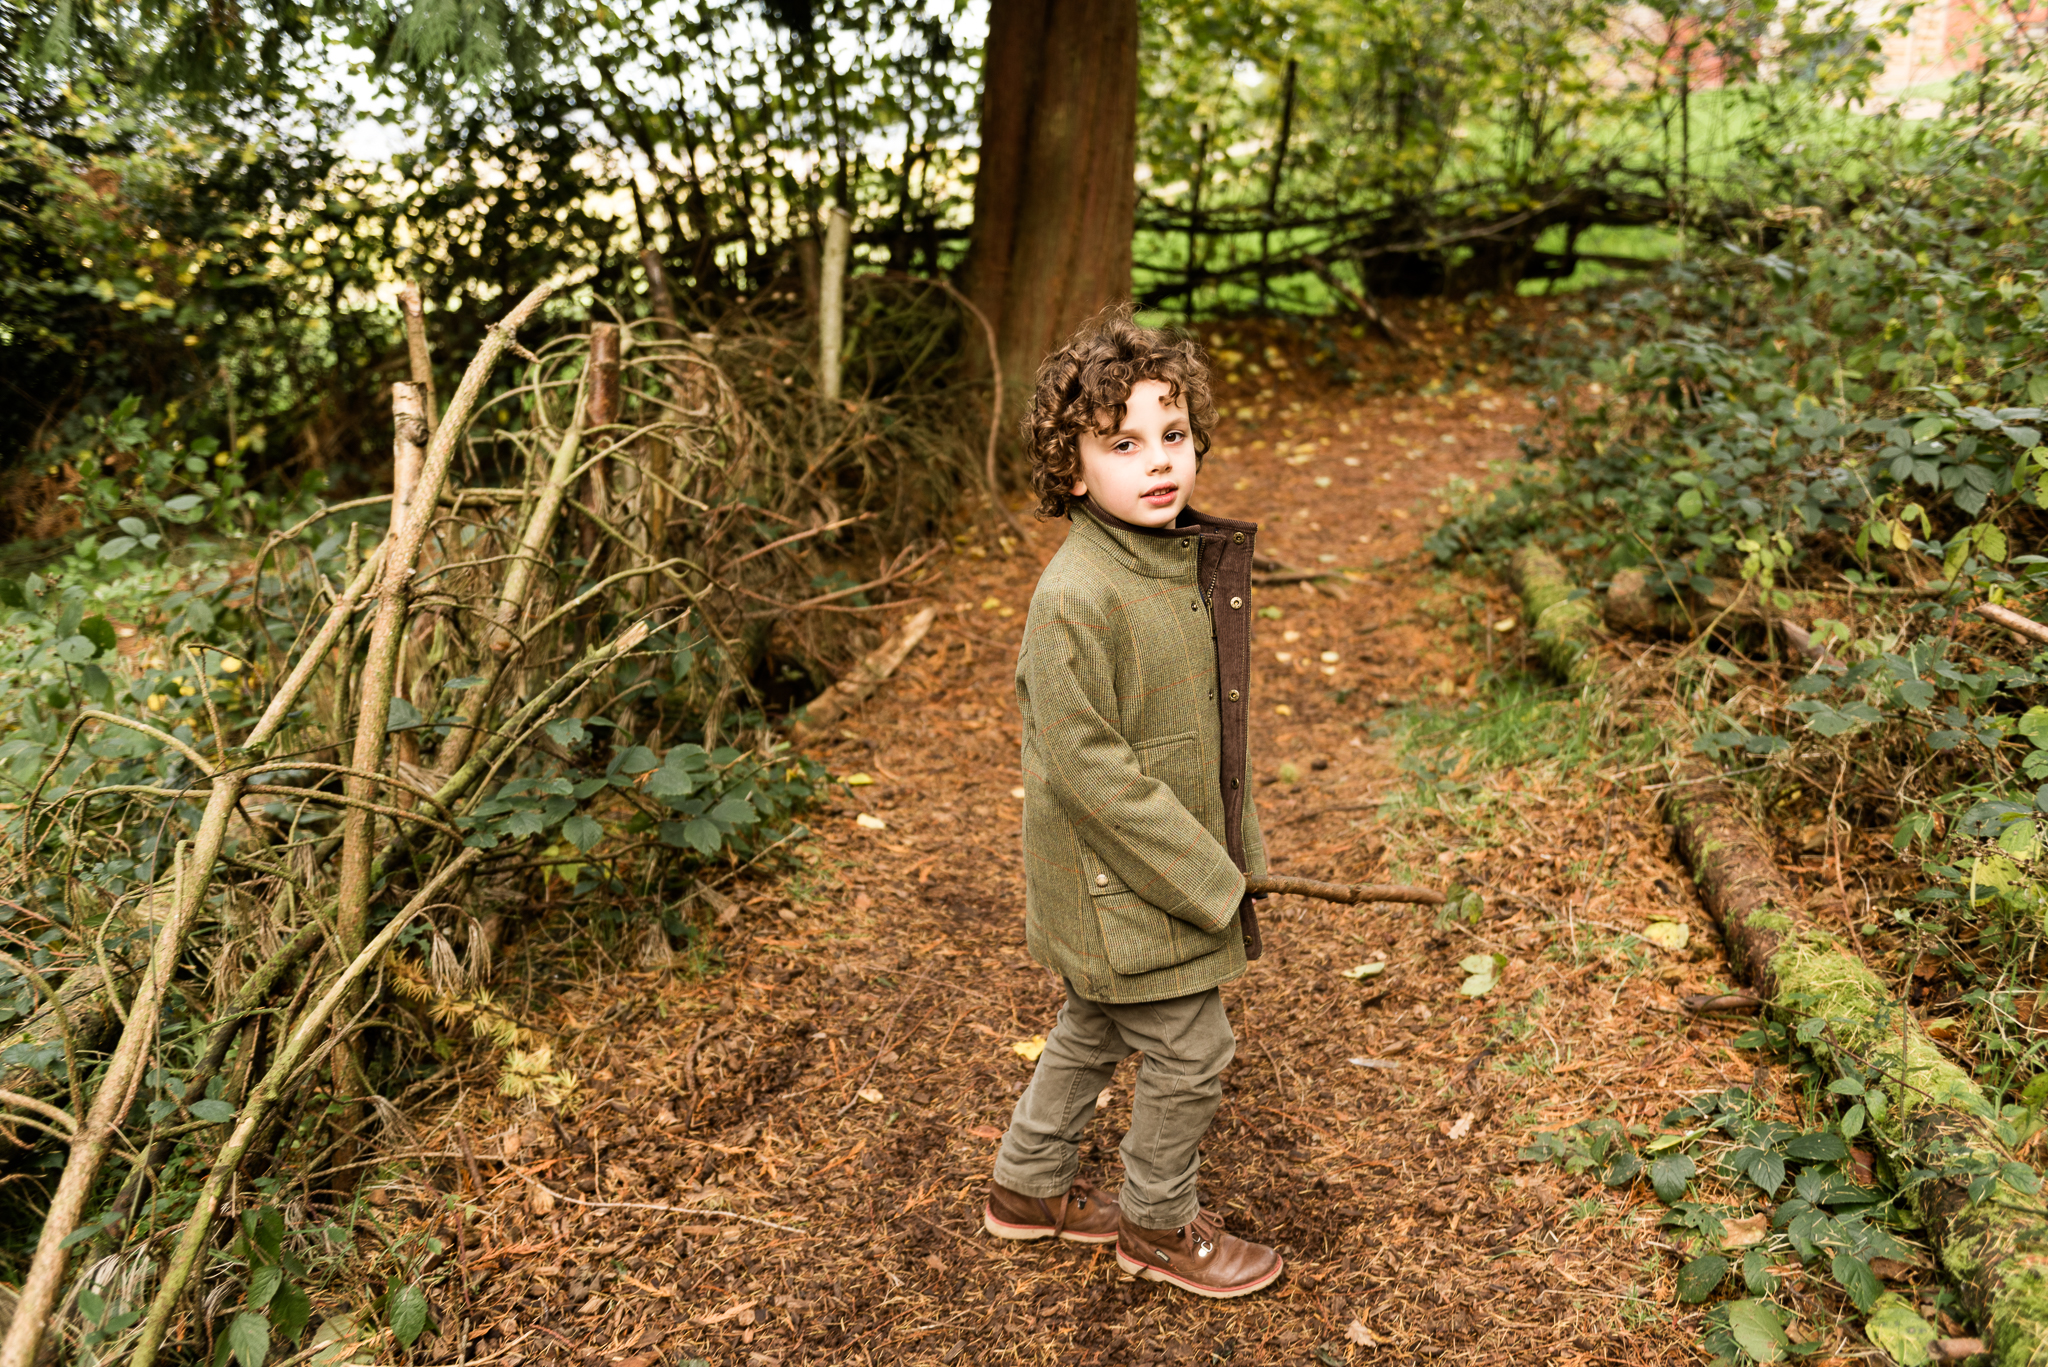 Autumn Documentary Lifestyle Family Photography at Clent Hills, Worcestershire Country Park countryside outdoors nature - Jenny Harper-8.jpg